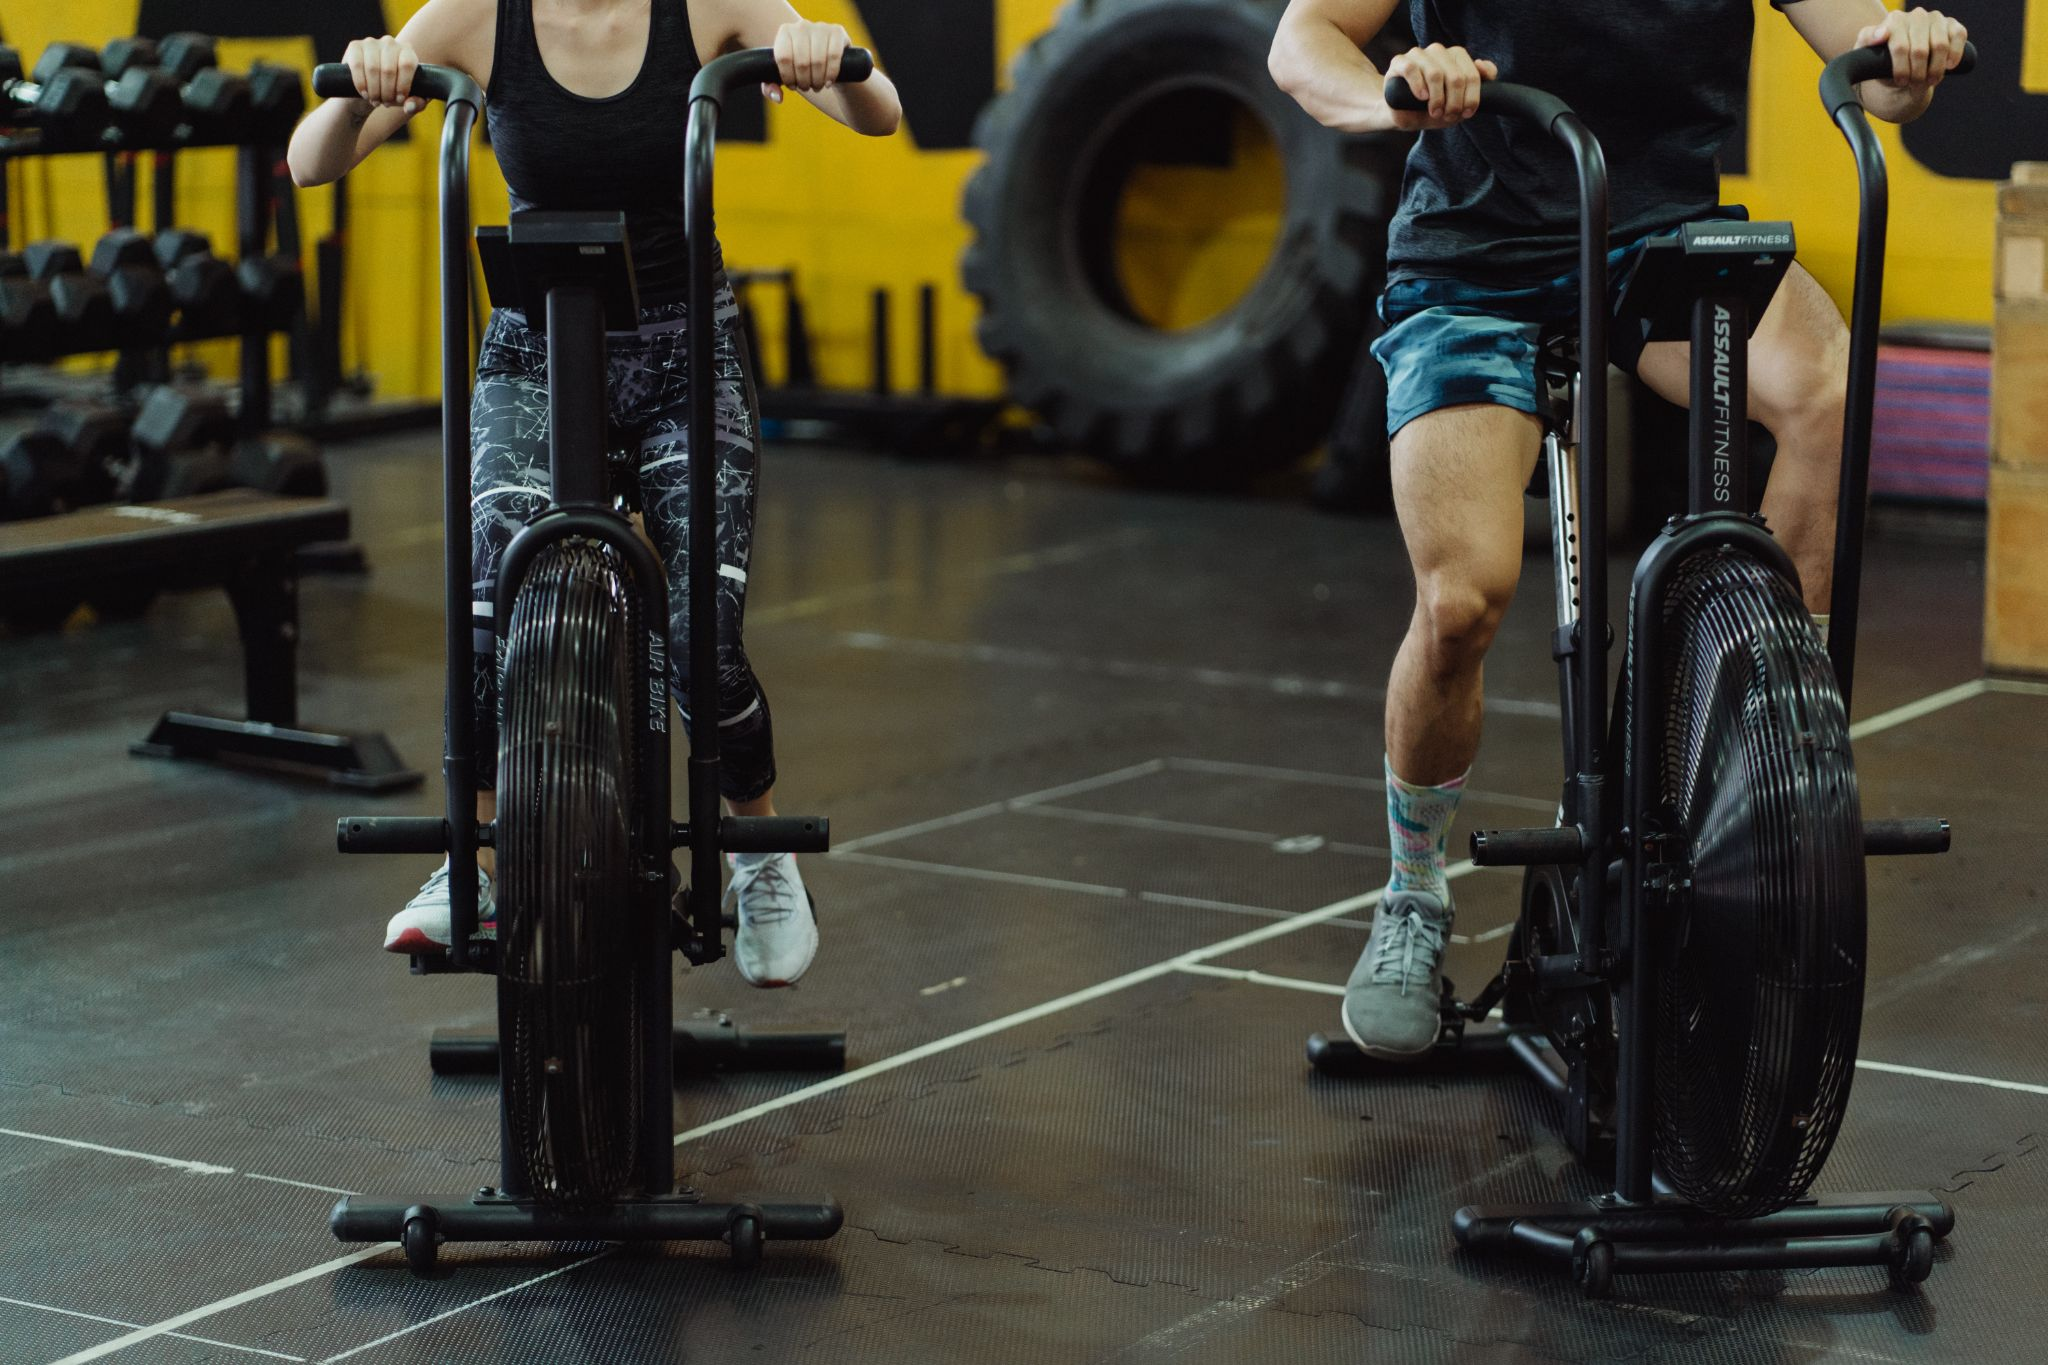 Exercise to manage cough might include cycling in the gym